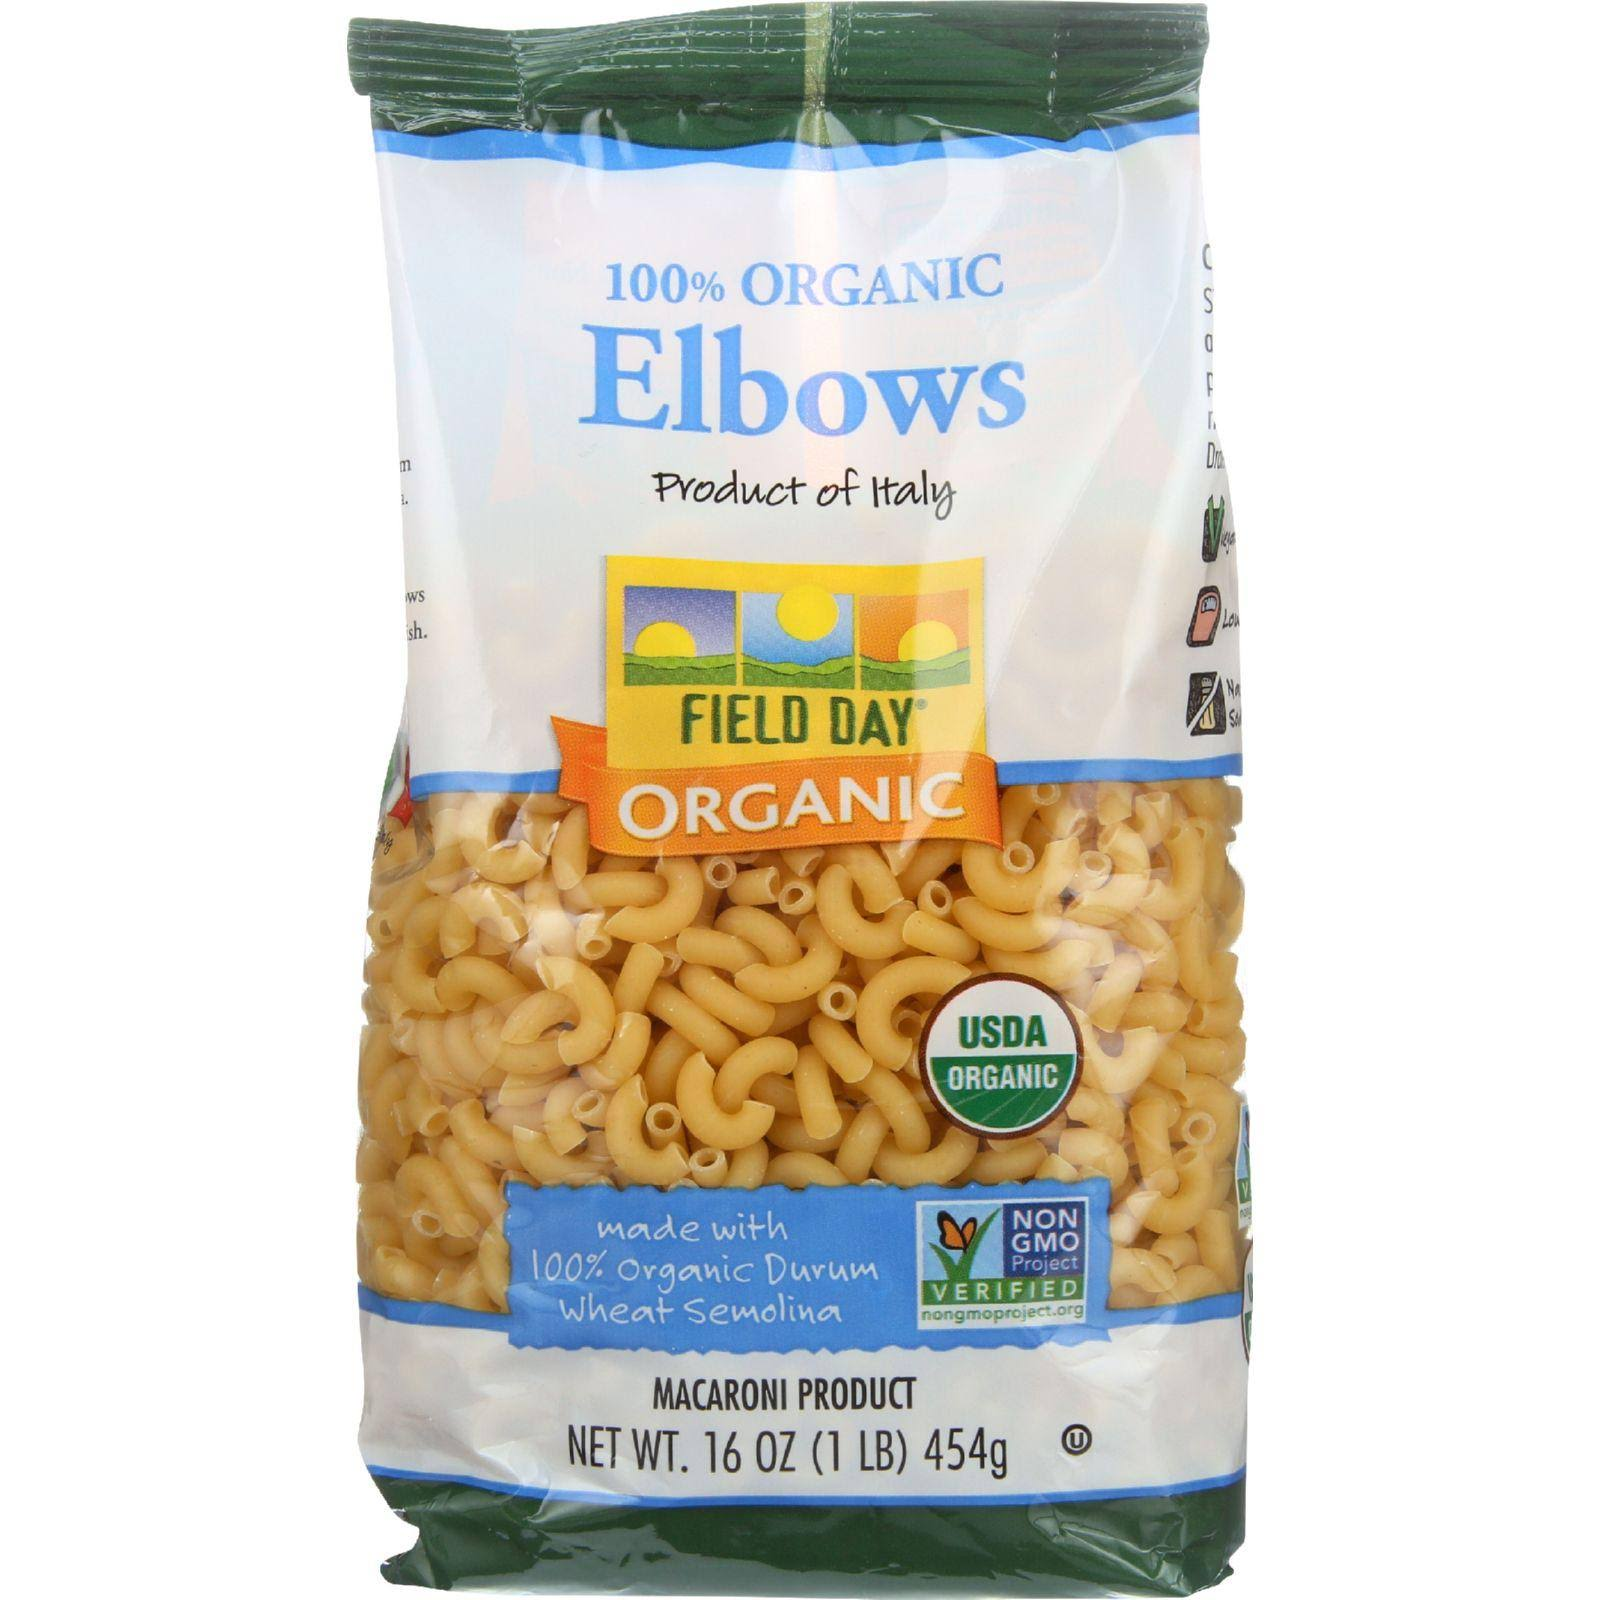 Field Day Elbow Macaroni Pasta